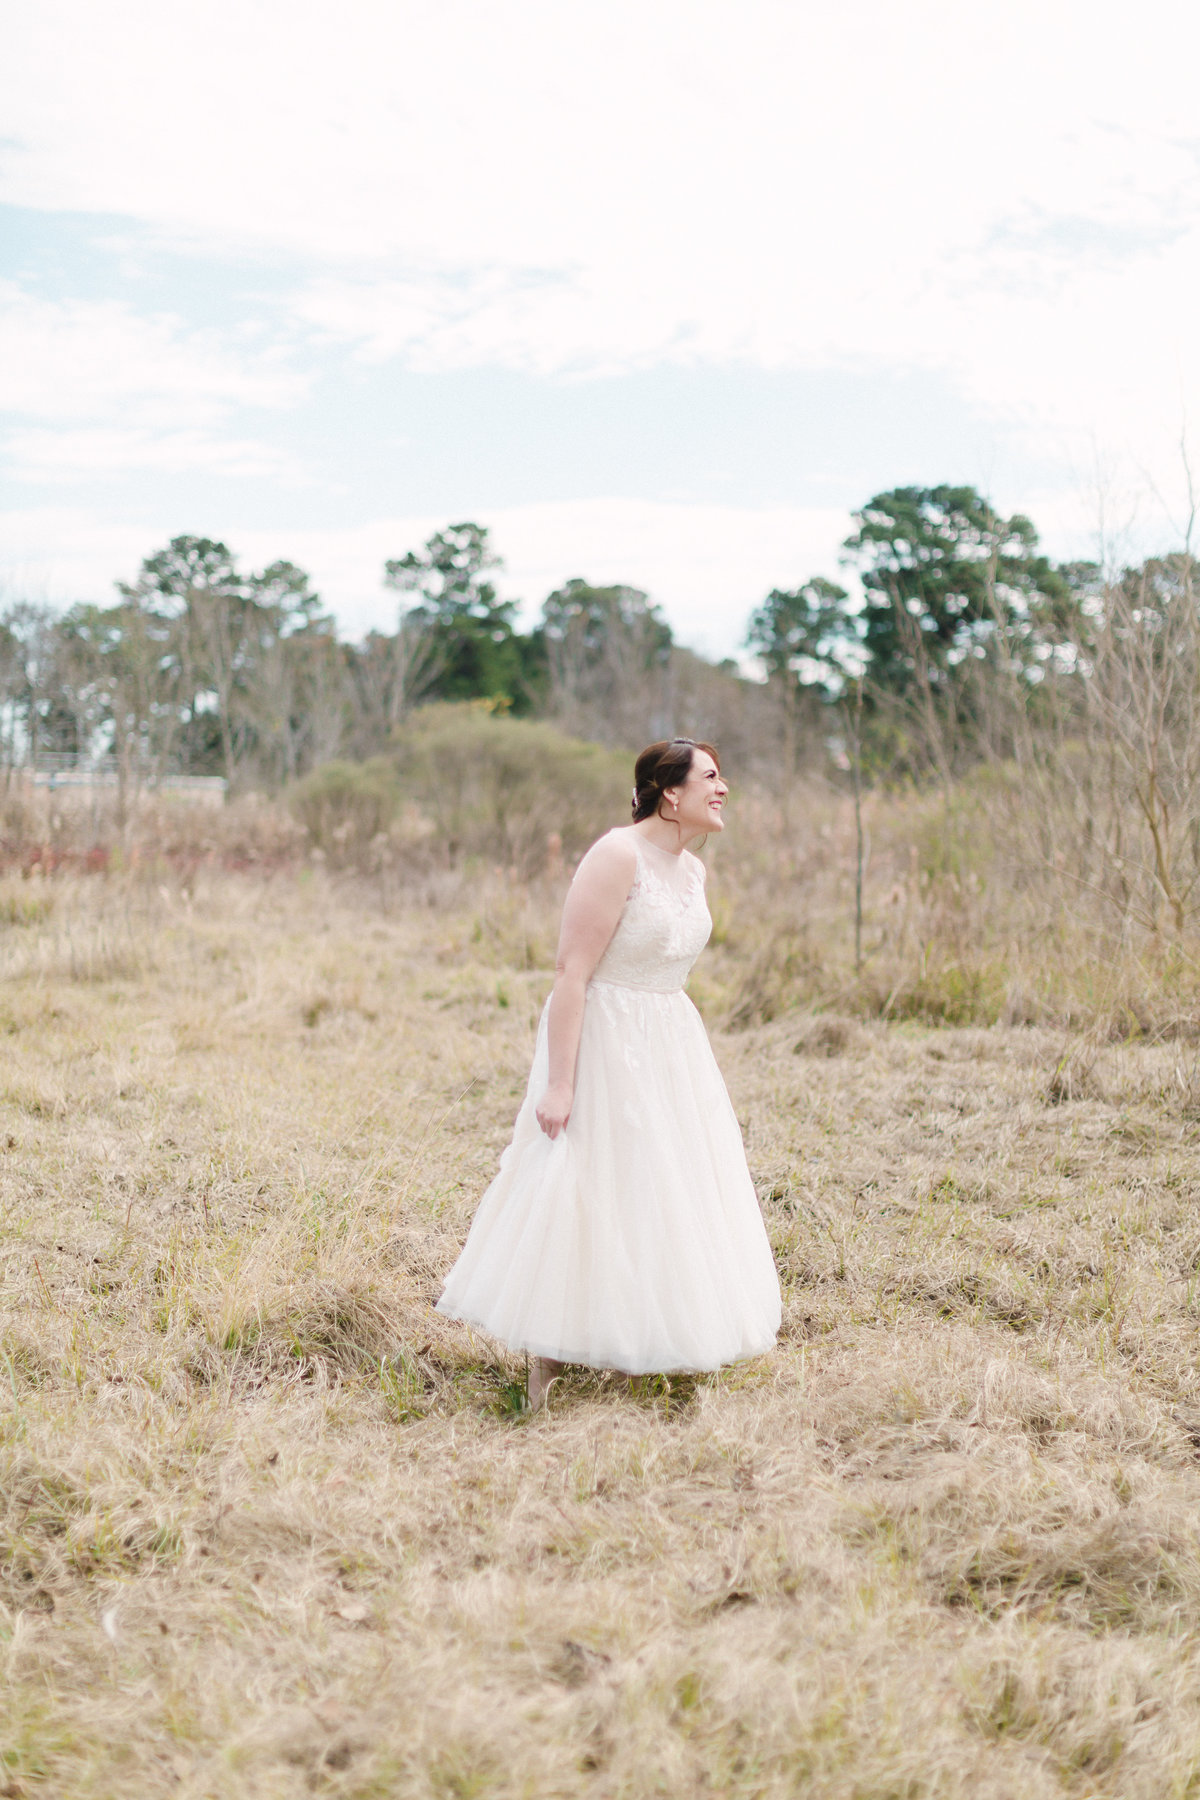 The-woodlands-bridal-session-alicia-yarrish-photography-19